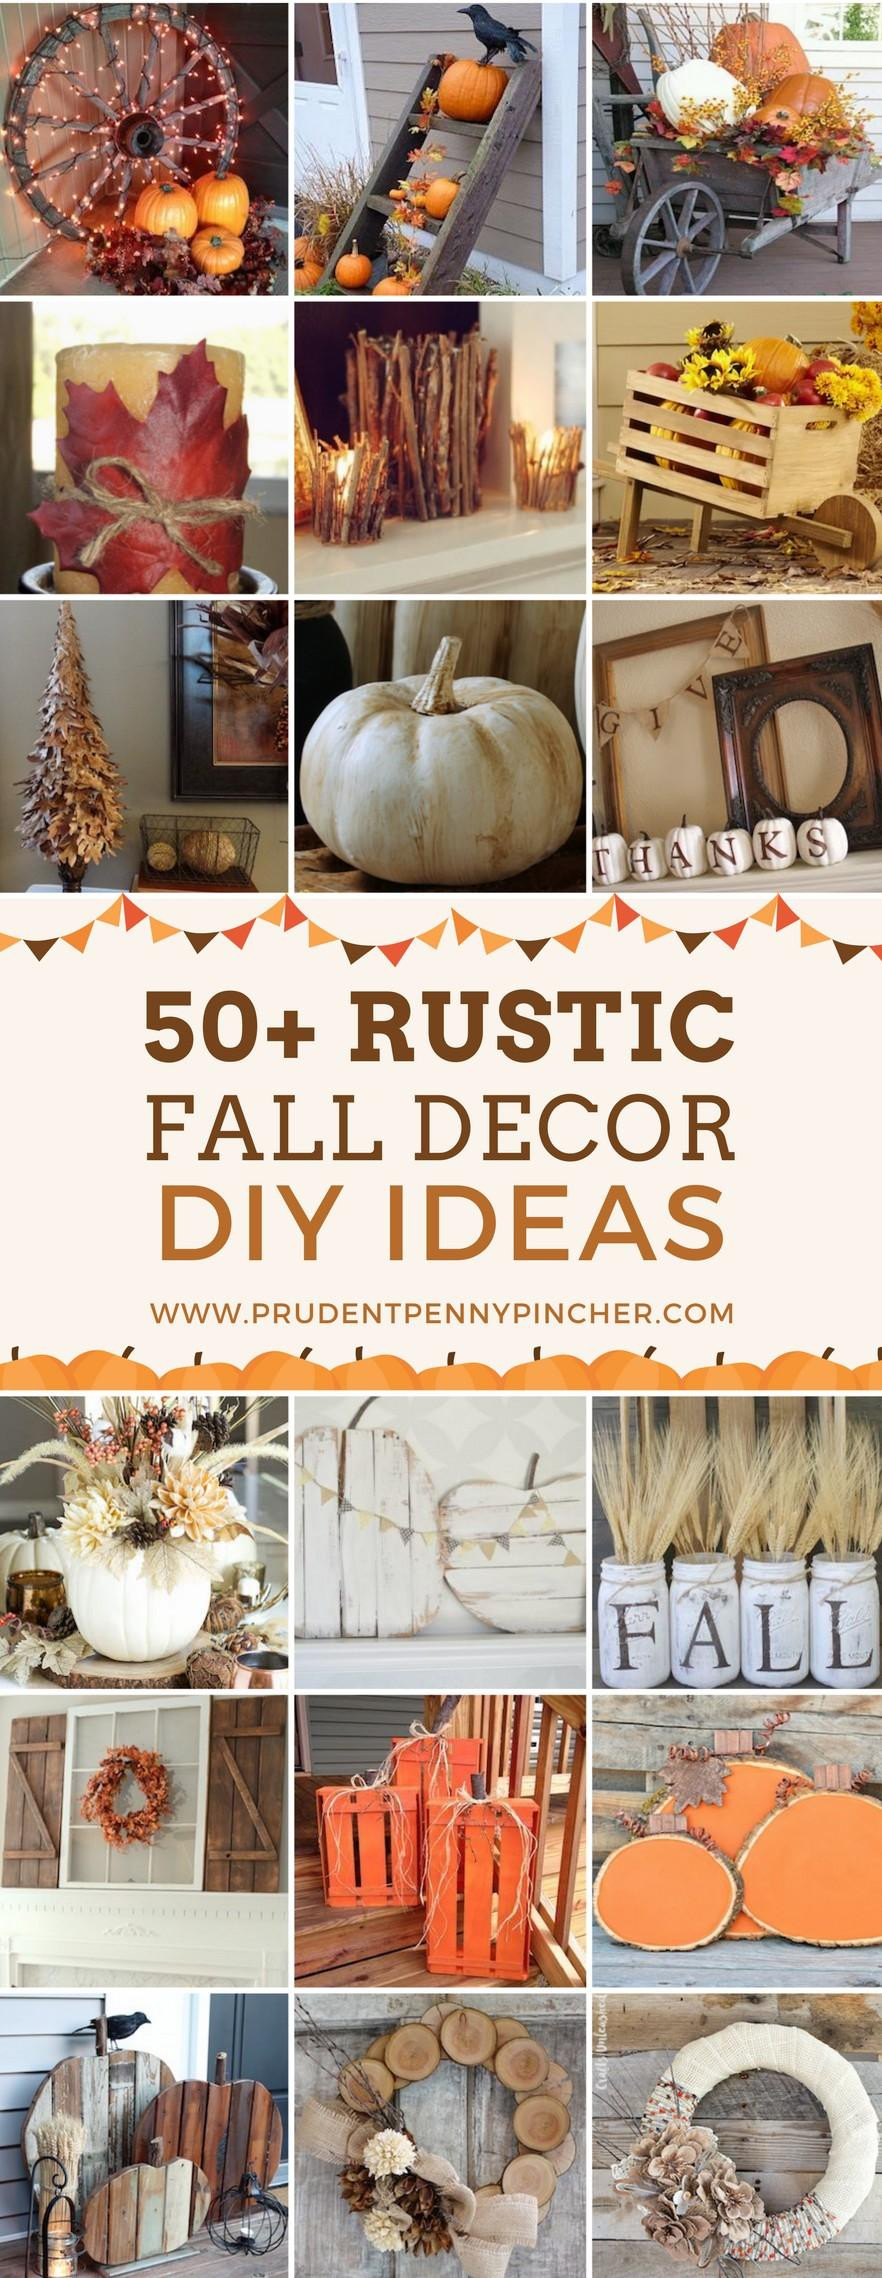 white pumpkin vase filler of fall decorating ideas diy awesome cheap fall decorations 15 cheap for fall decorating ideas diy awesome cheap fall decorations 15 cheap and easy diy vase filler ideas 3h economyinnbeebe com